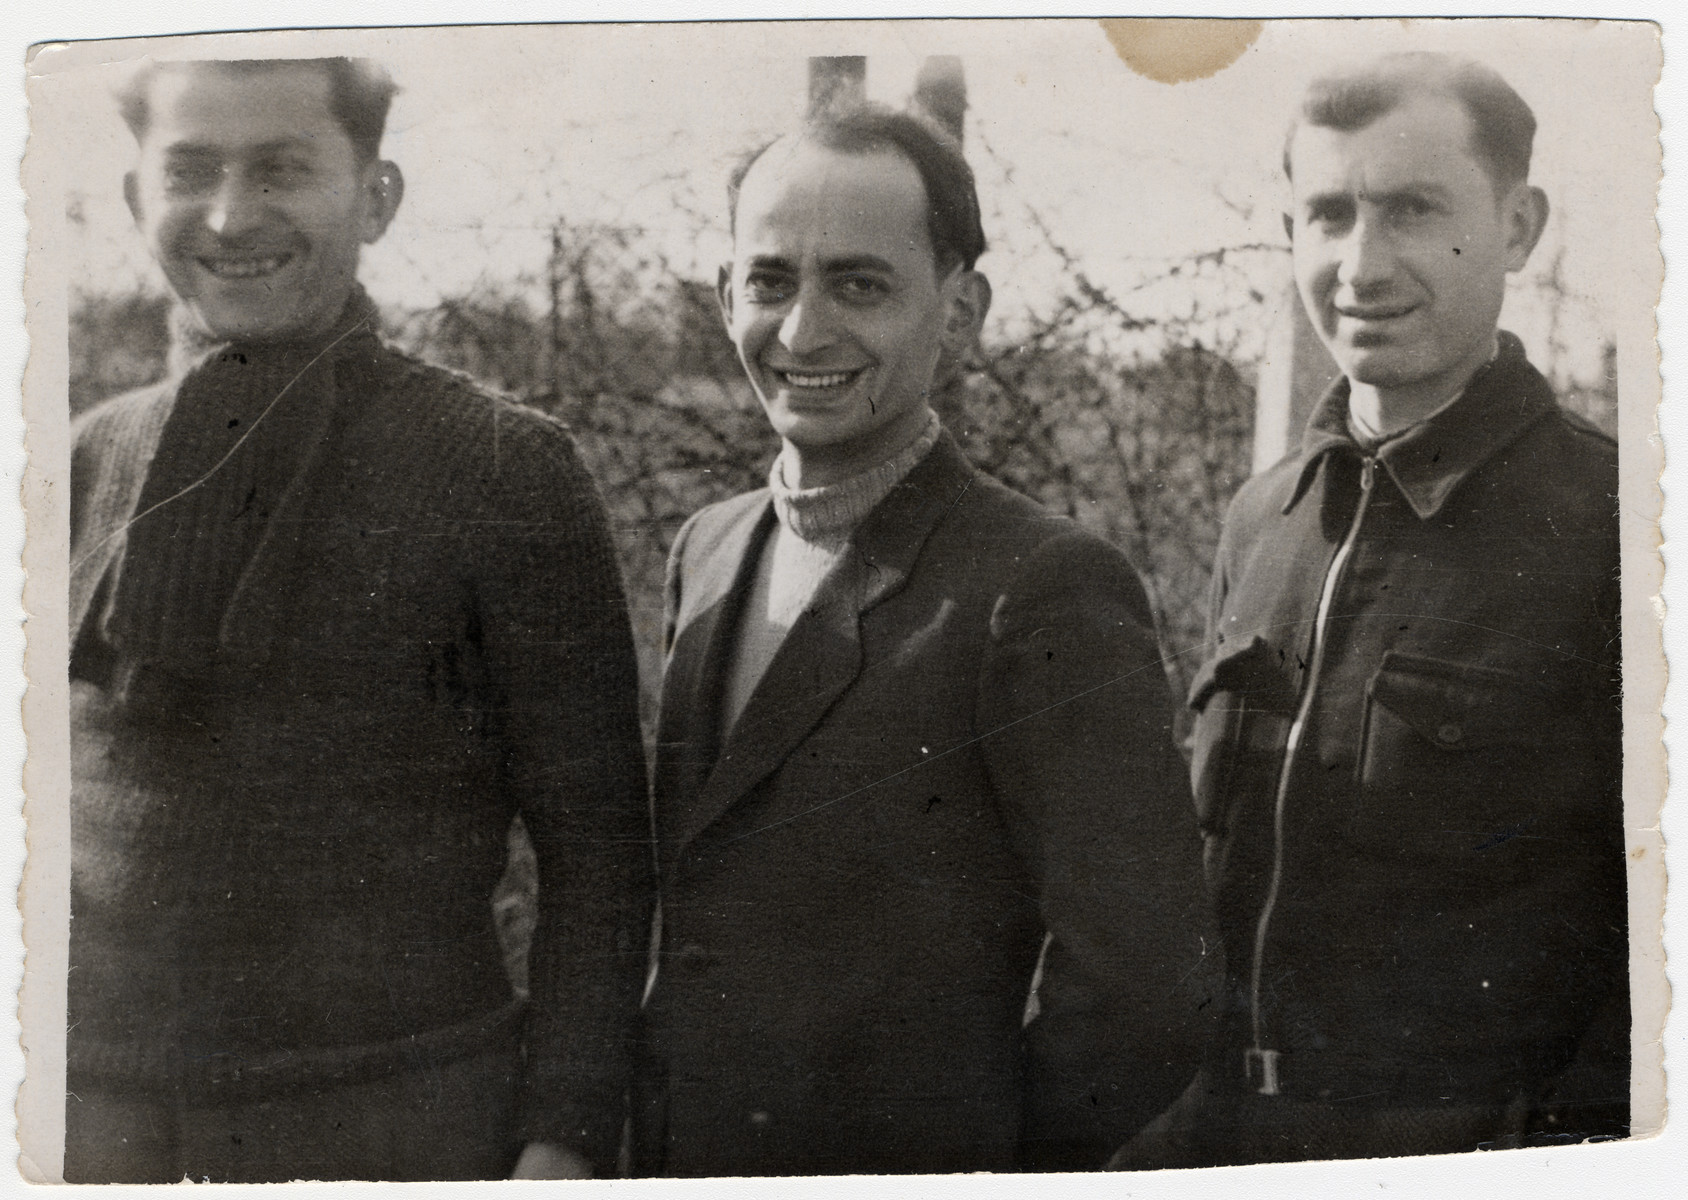 Close-up portrait of three Jewish men in the Beuane-La-Rolande internment camp.  Pictured are Chil Sztal, Jankiel Michalowiciz and Moishe Sztal.  The original caption reads: To my dear brother in law and sister in law and our dear cousins.  We are sending you this photograph as a remembrance of our time in the Camp Beaune-la-Roland.  Passover 1942.